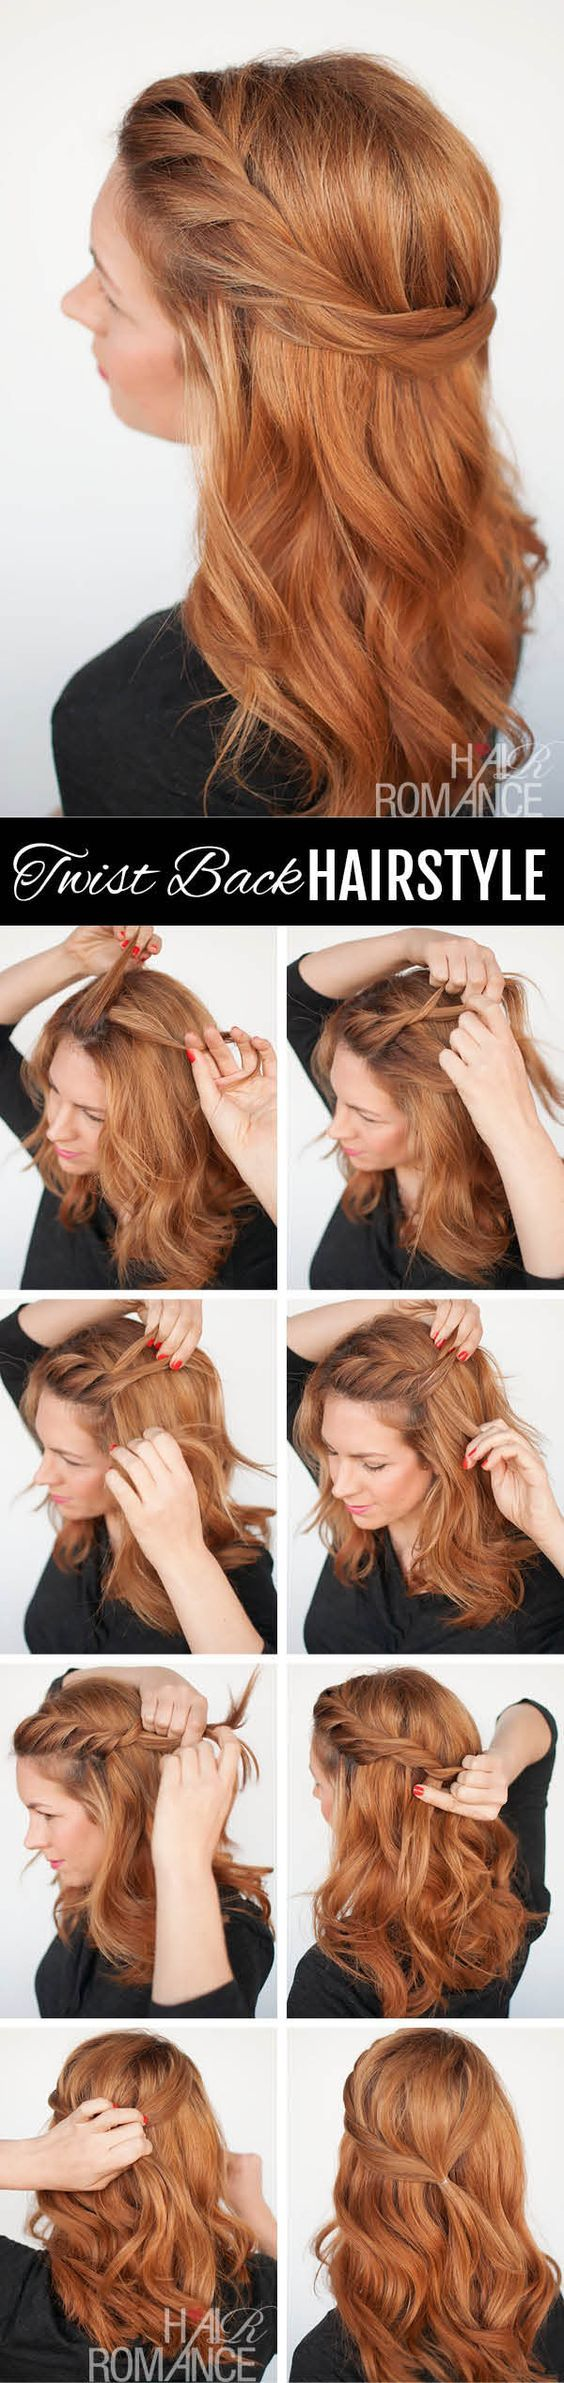 The Twist Back Easy Half Up Hairstyle Tutorial Hair Romance Hair Styles Hair Romance Hairstyle